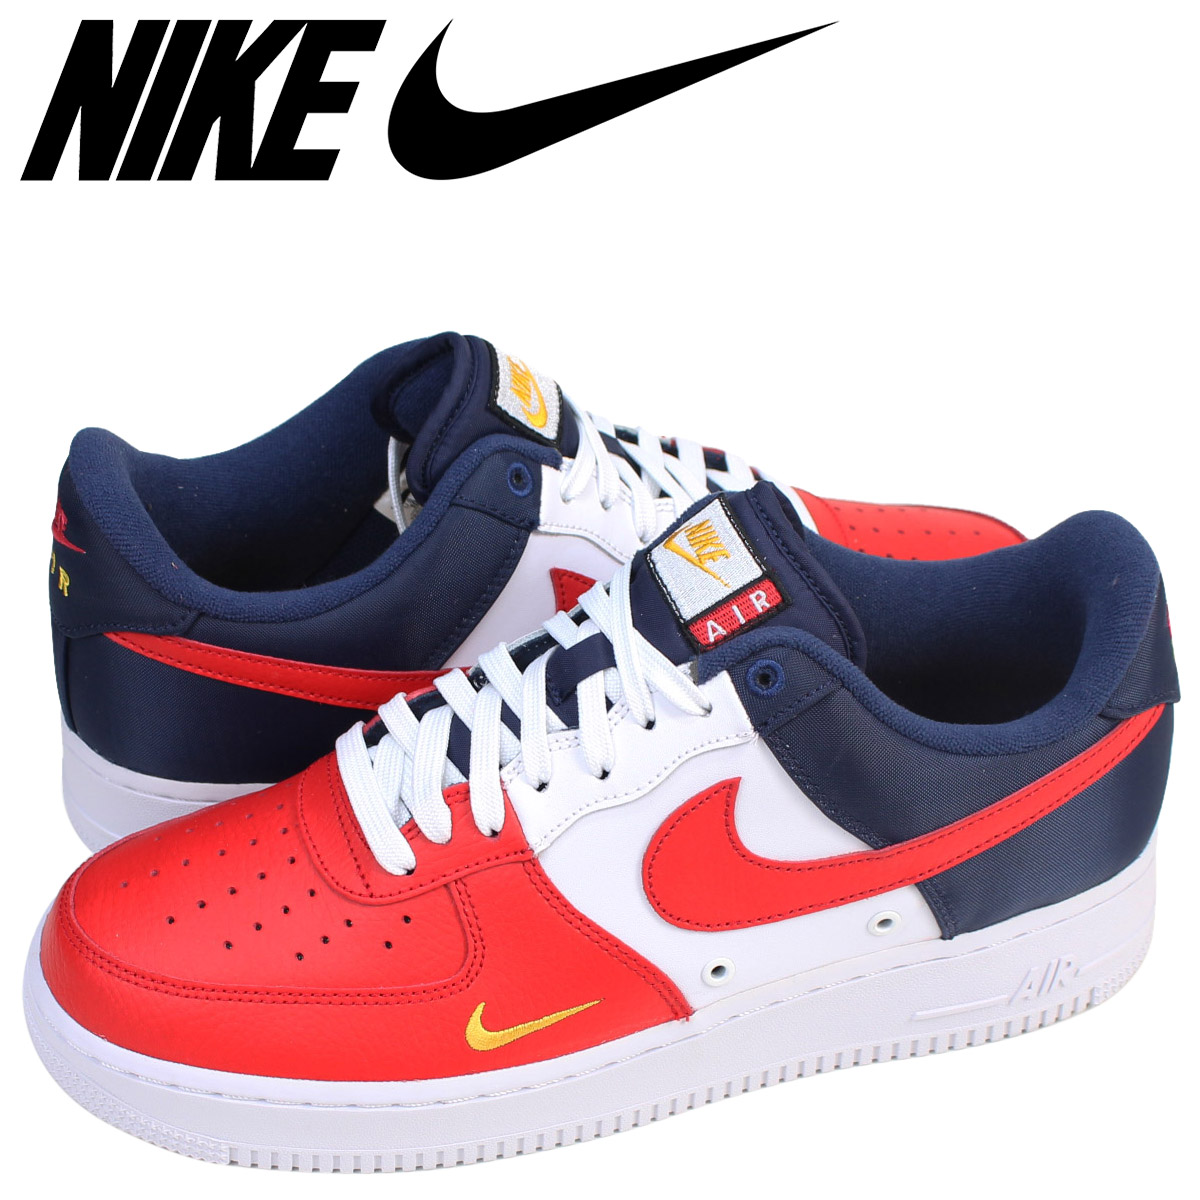 07 601 1 Sneakers Force Low Men's 511 Tricolor Lv8 Air Nike 823 uc5TlJ1FK3